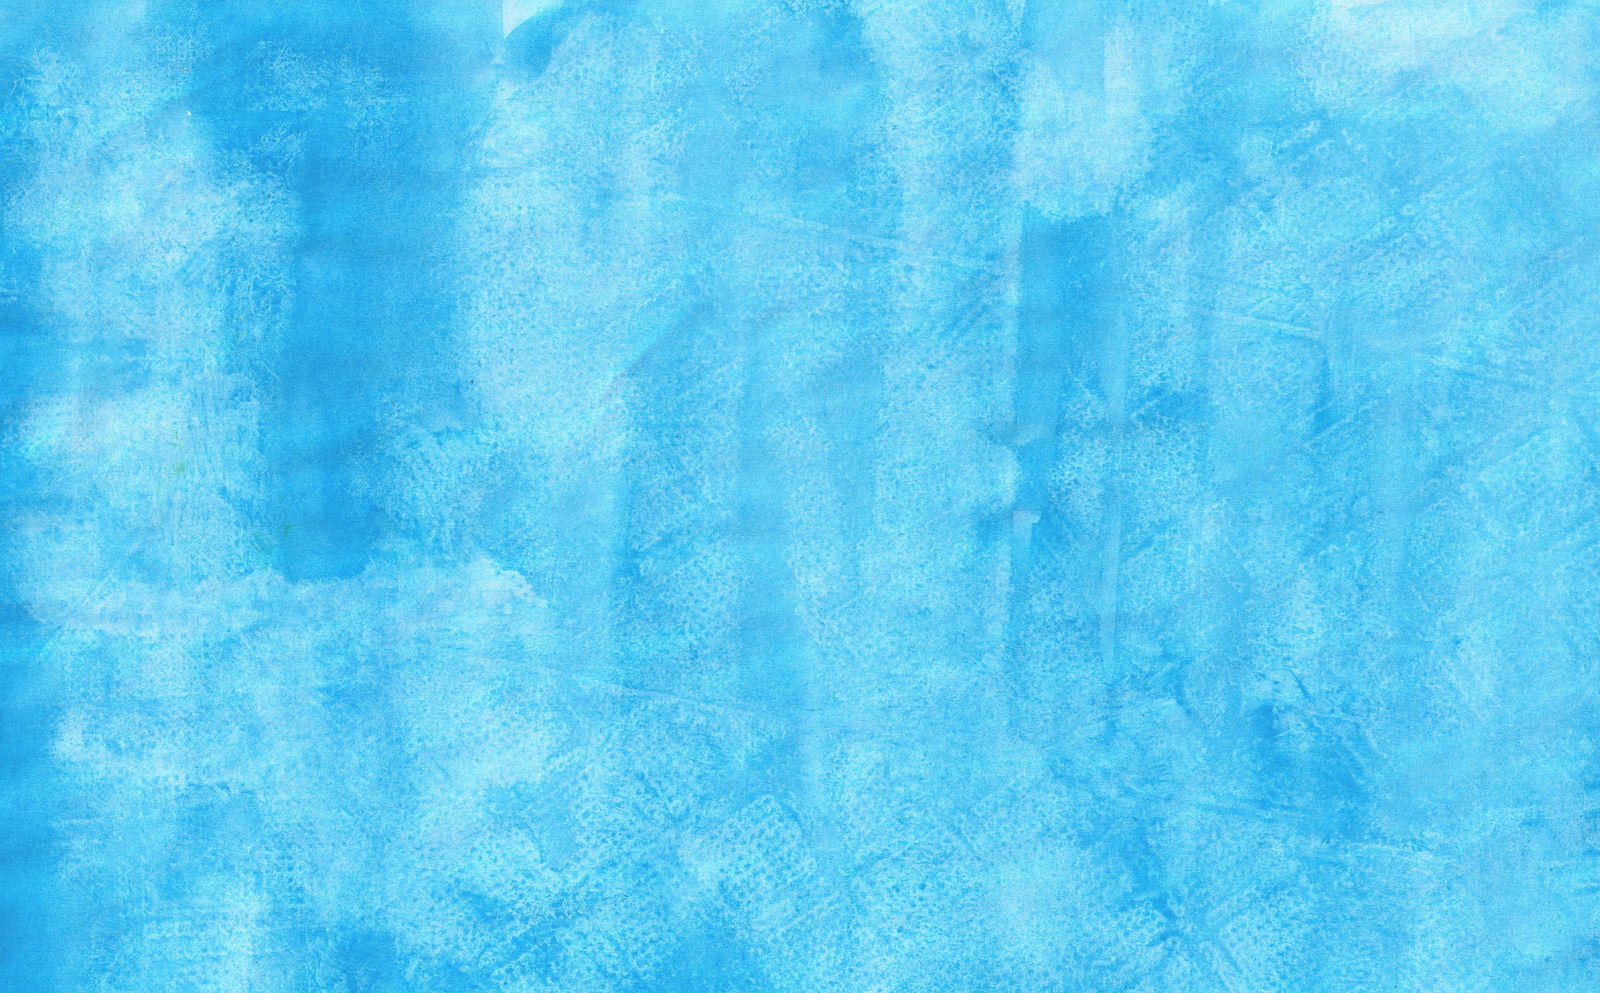 Grungy Bright Colored Blue Watercolor On Napkin Textures ReUsage 1600x993